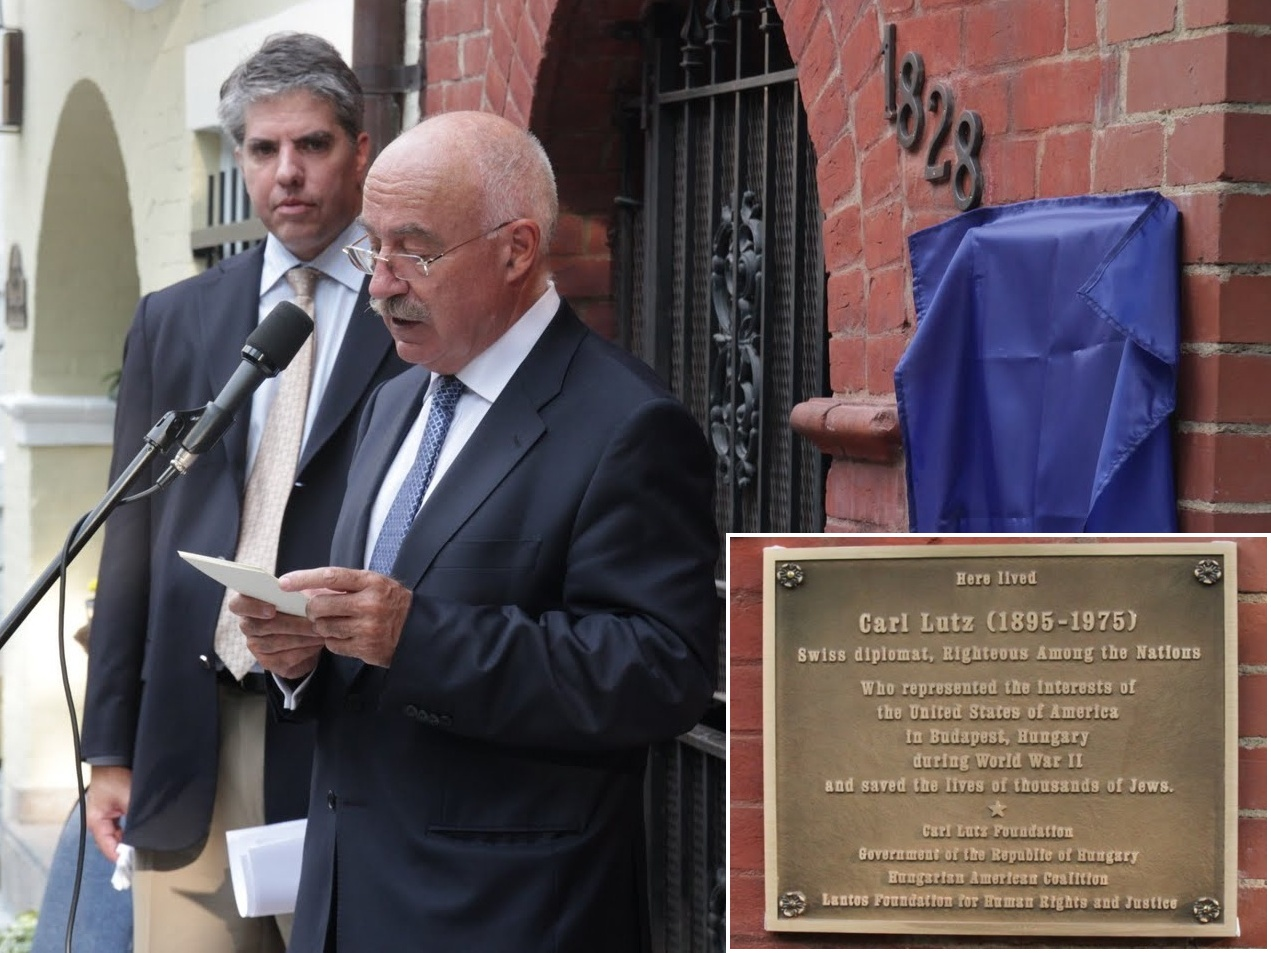 Dr. János Martonyi giving a speech at the Dedication of a Commemorative Plaque on Carl Lutz's Residence in Washington, DC on June 24, 2010